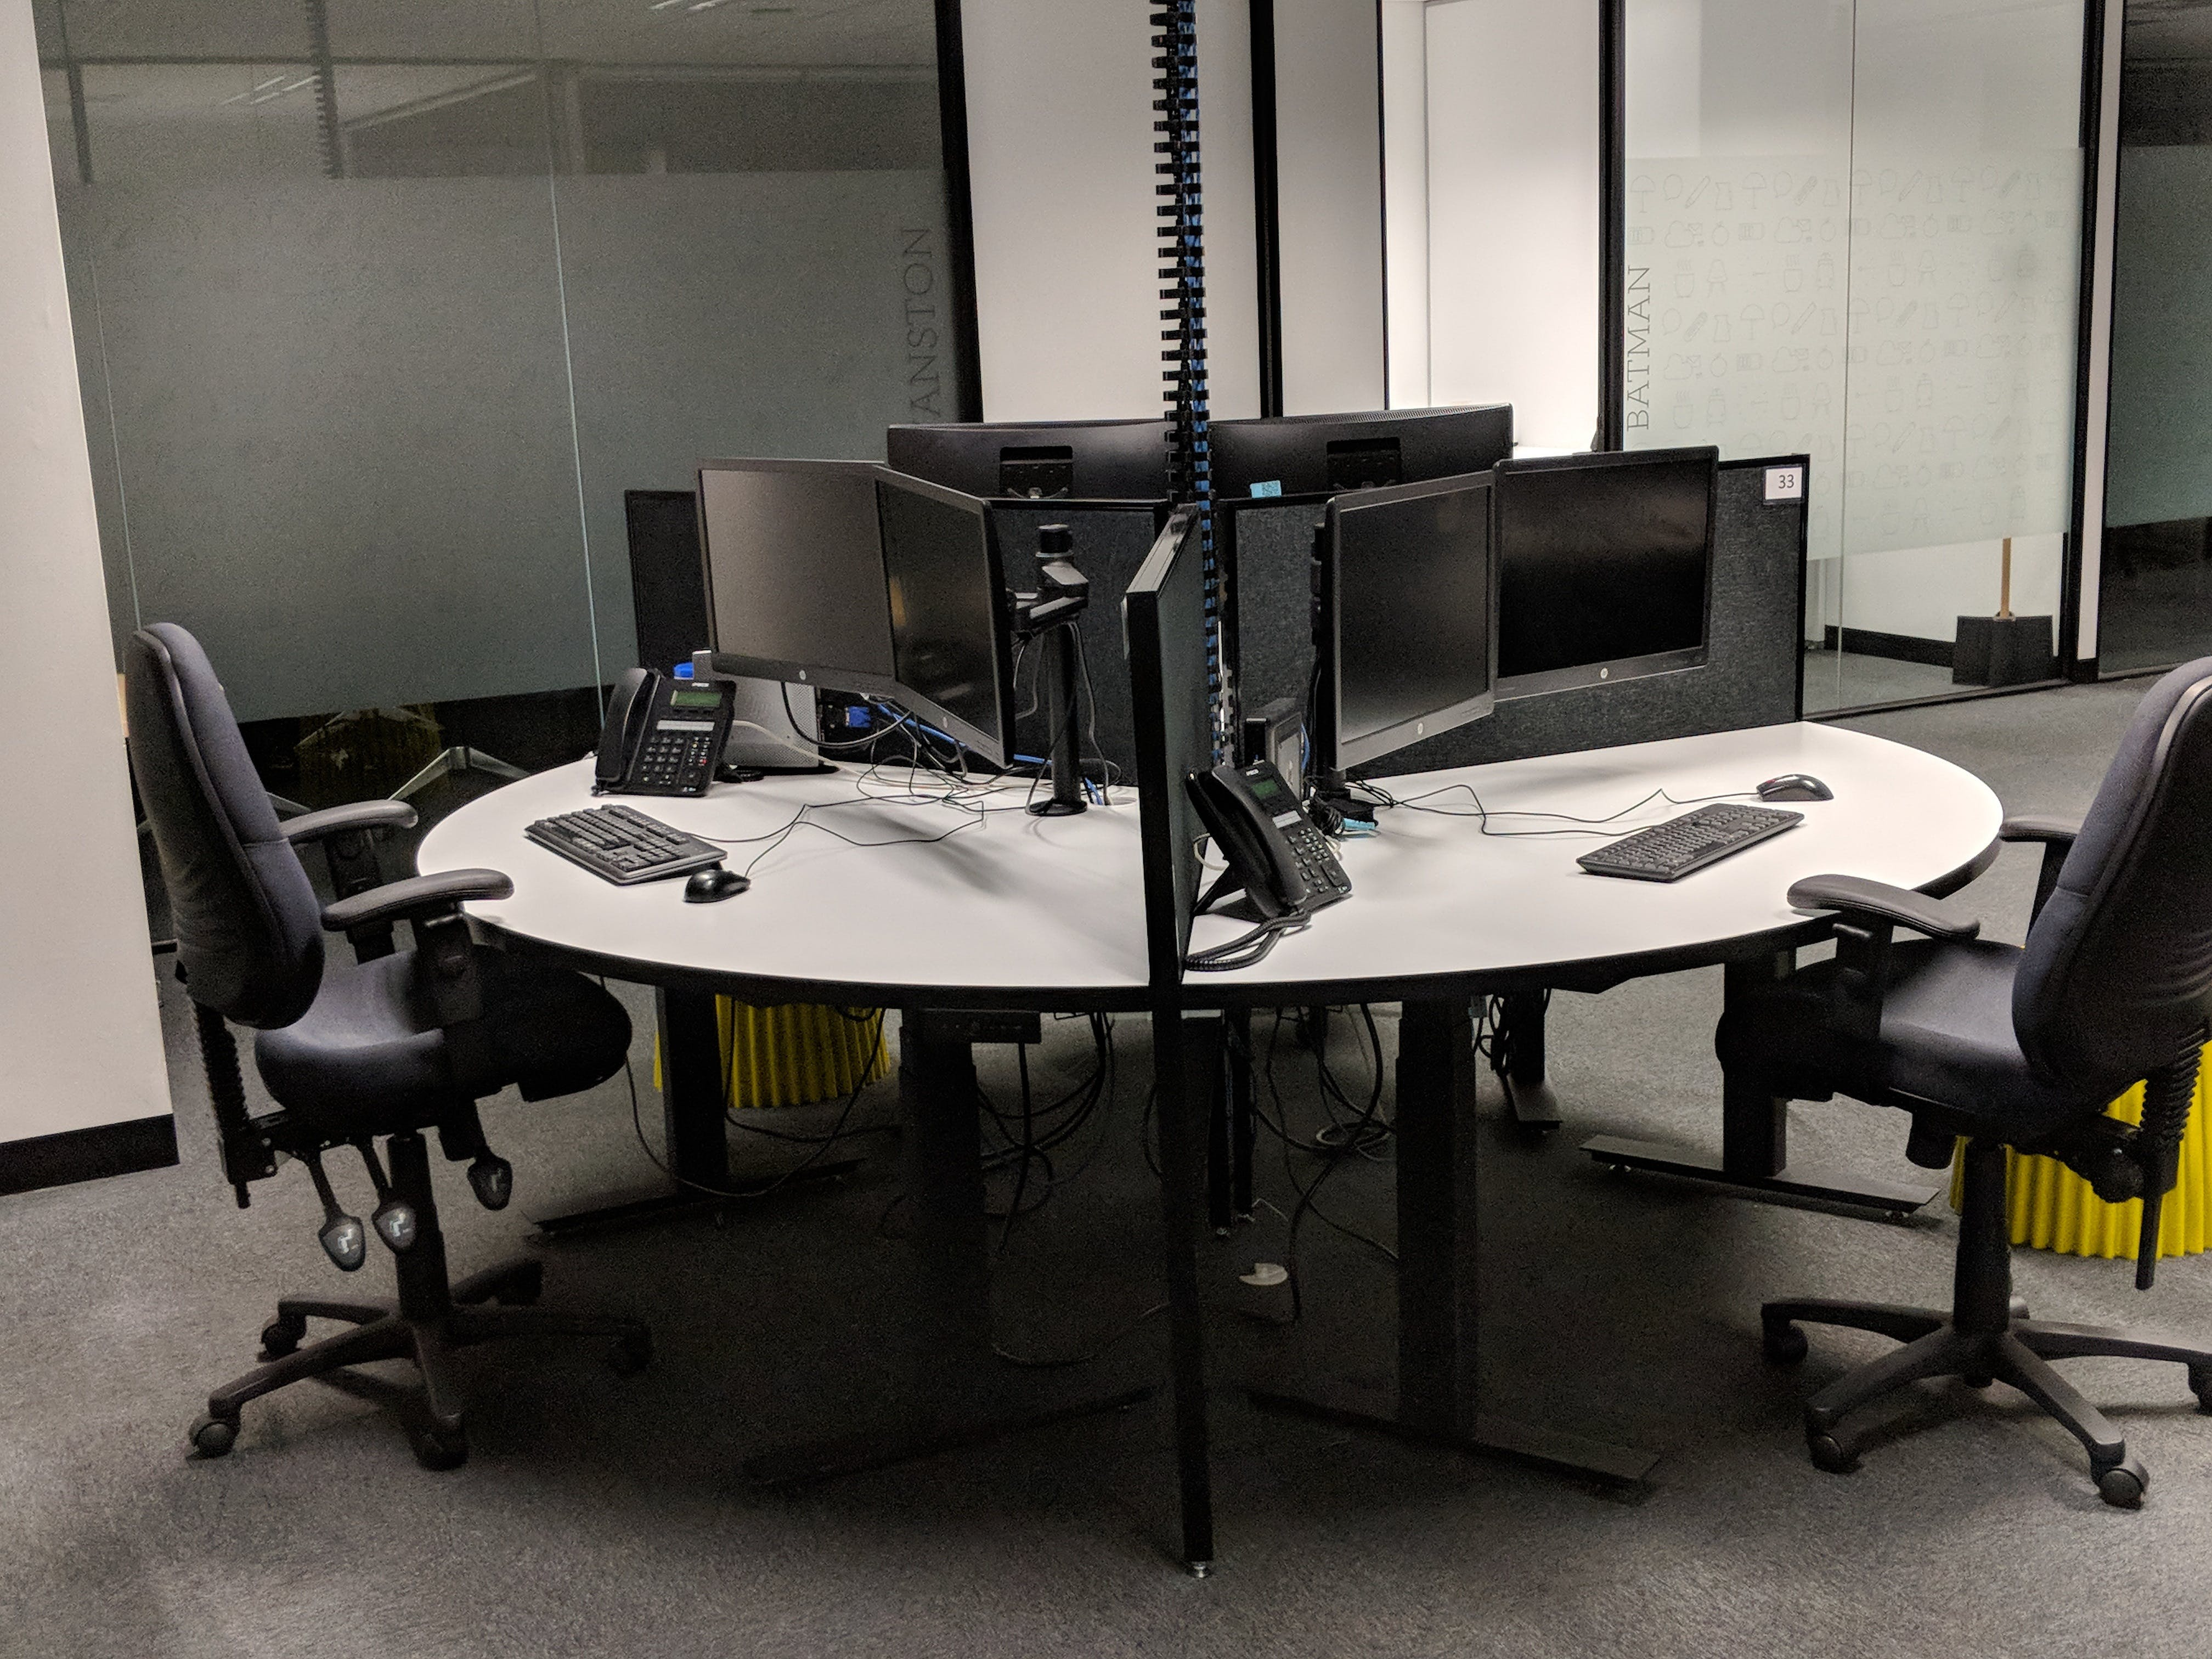 Hydraulic Desk, coworking at Space Station, image 2